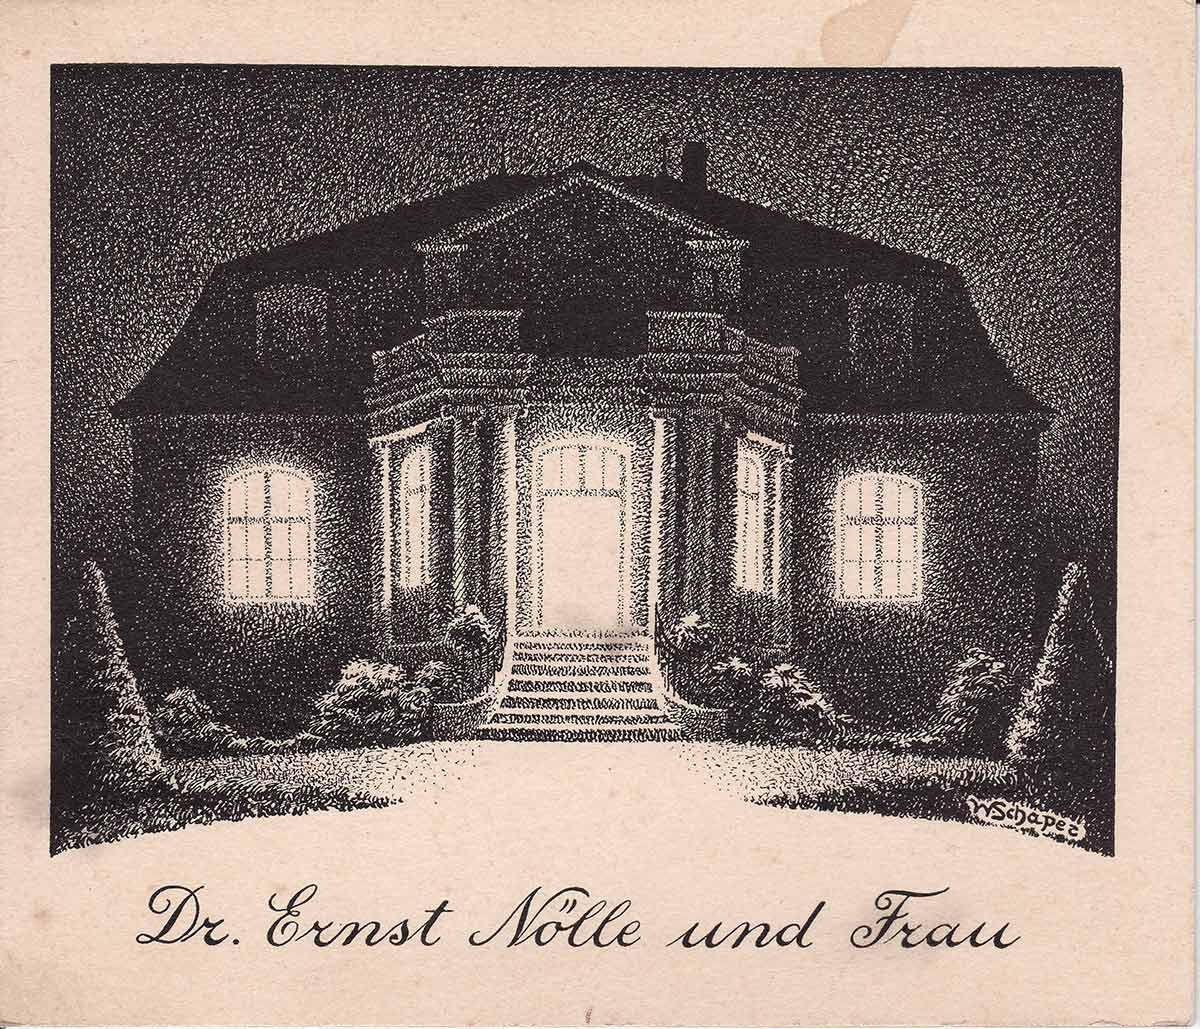 Limonenstrasse 8 in Berlin: Invitation card of the Noelle family, designed by Elisabeth Noelle's uncle Wolfgang Schaper